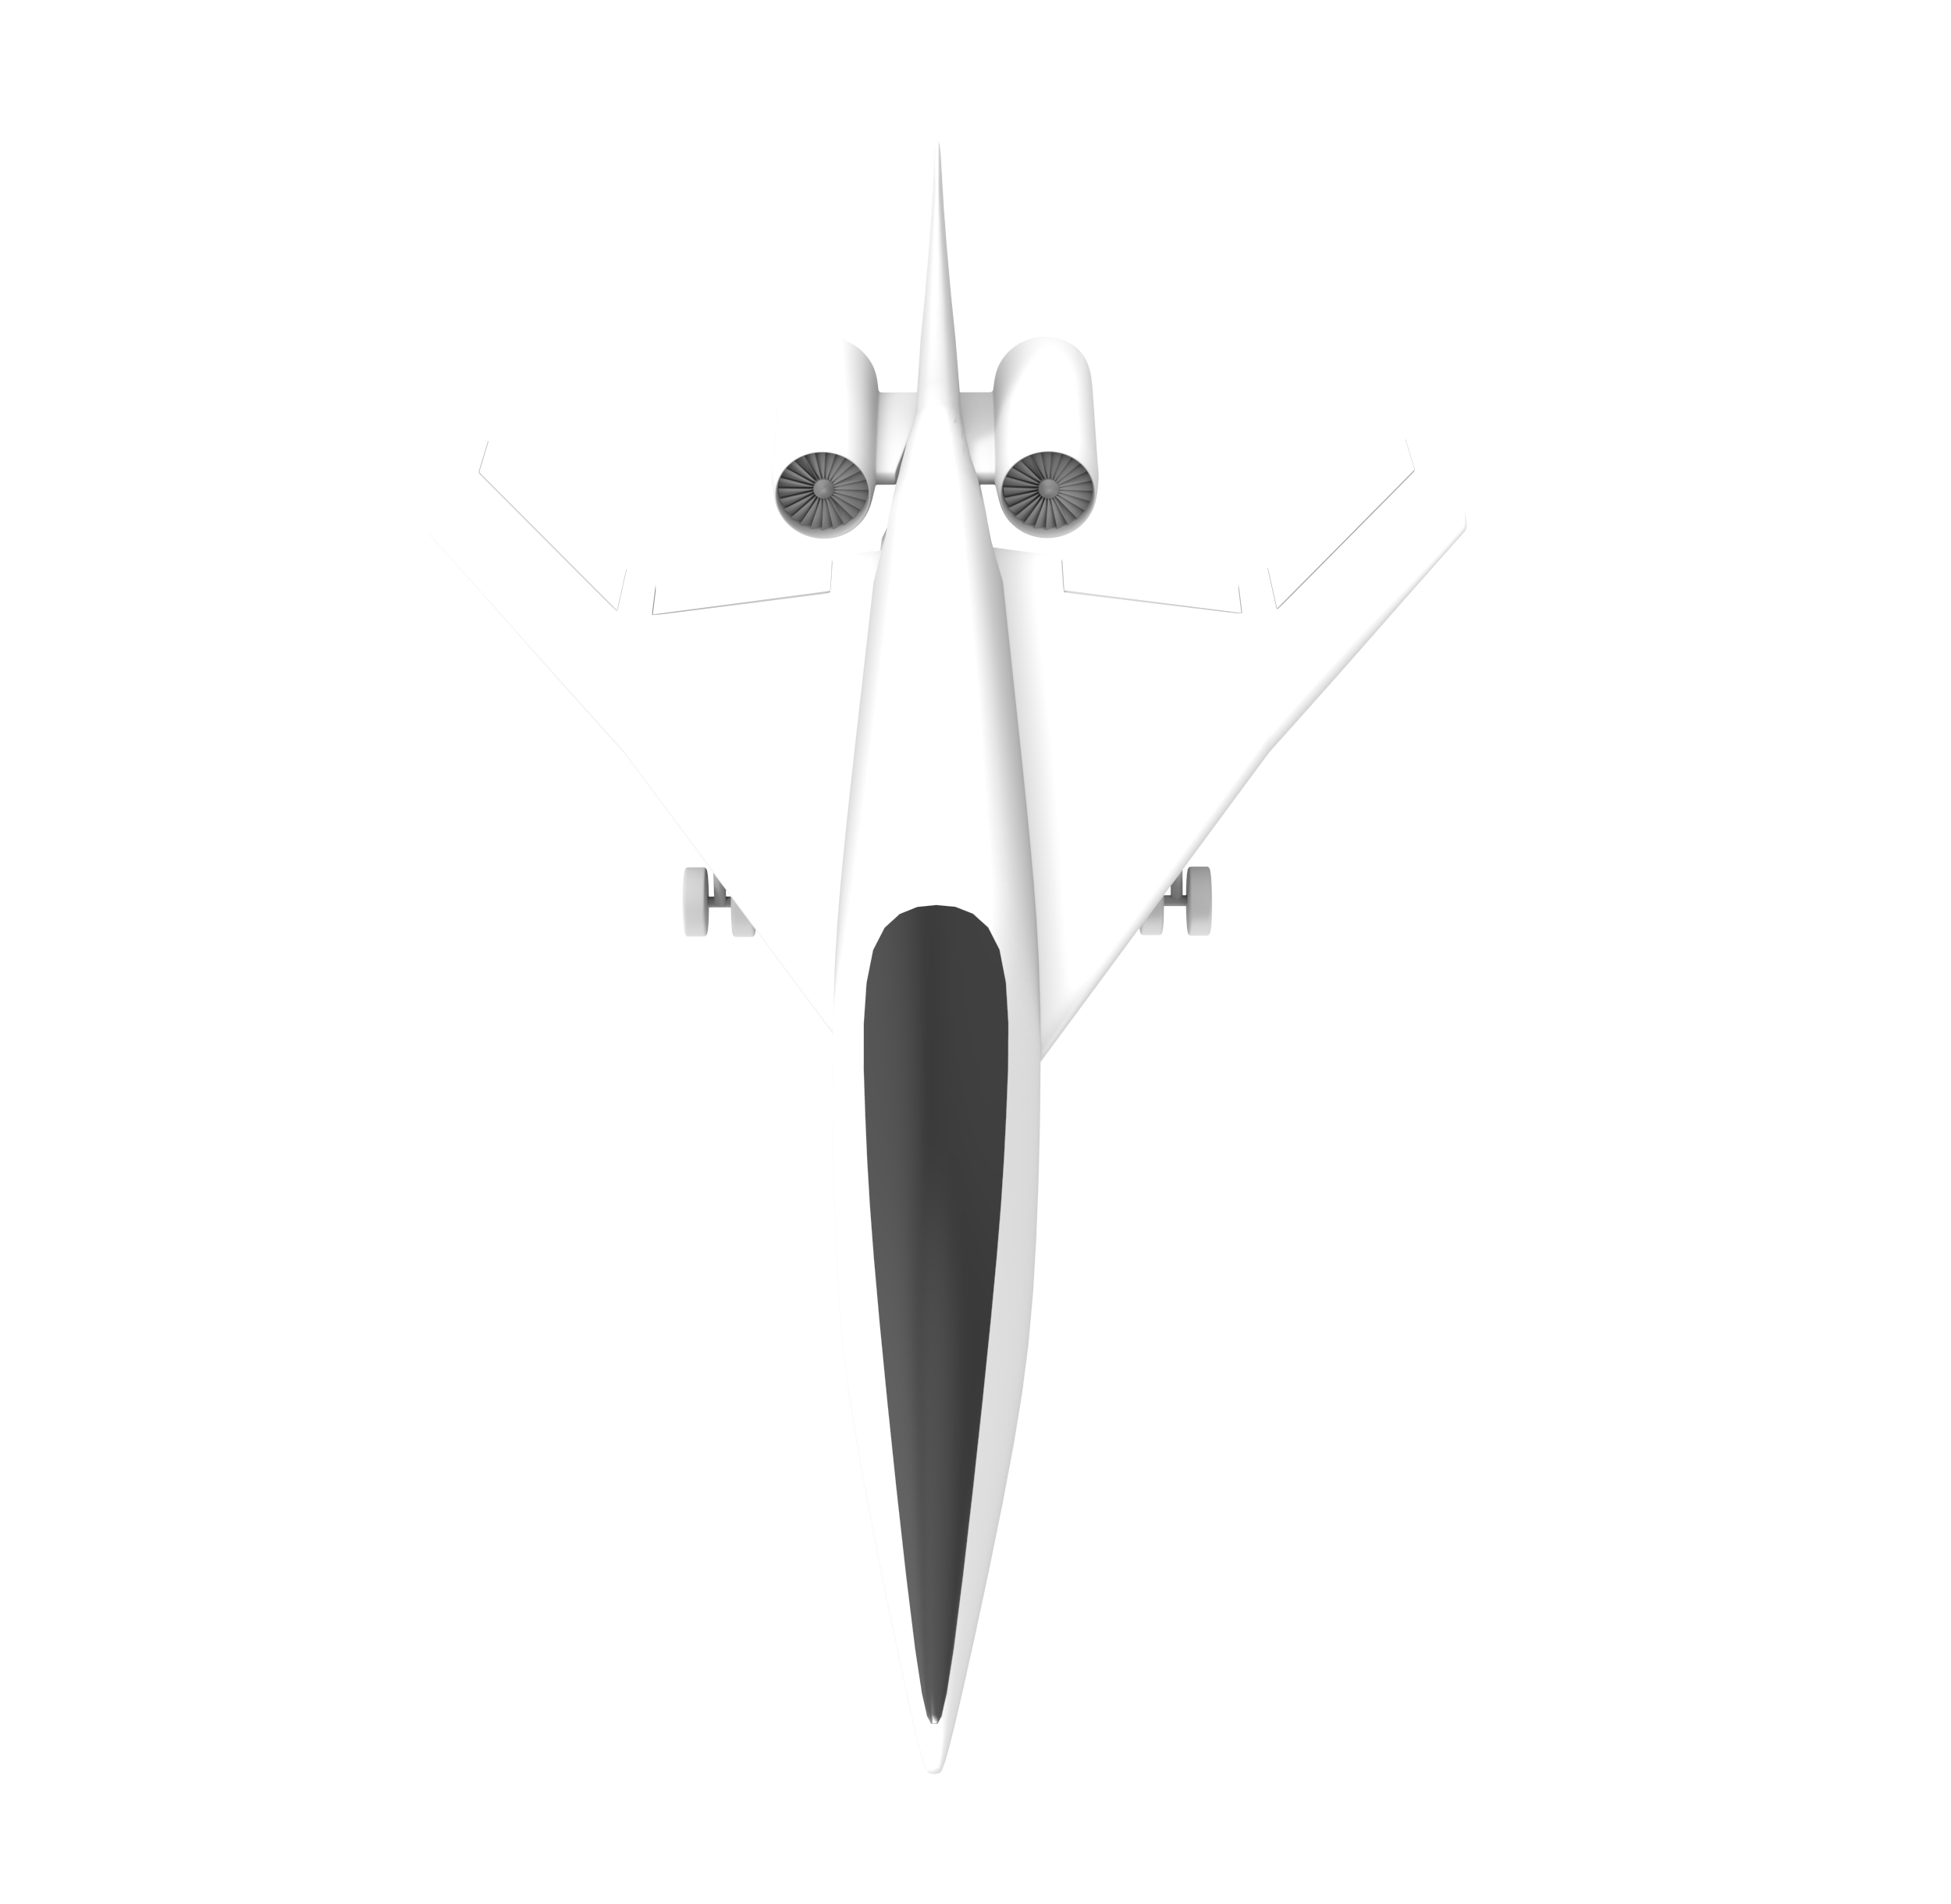 Spike Supersonic Drone & Demonstrator